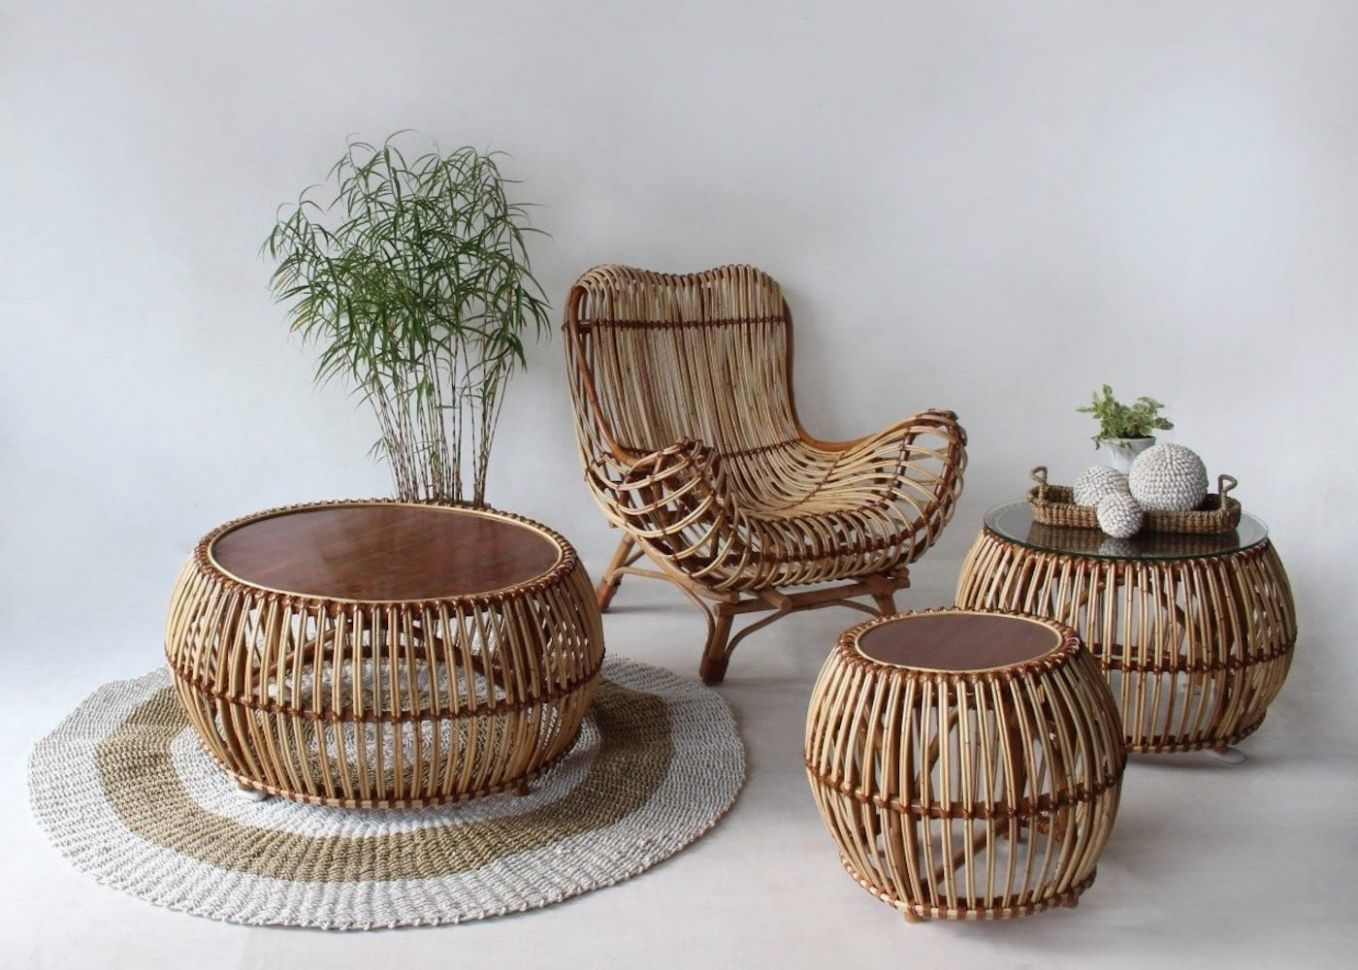 Furniture Shopping in Bali | Where to buy home decor | Honeycombers